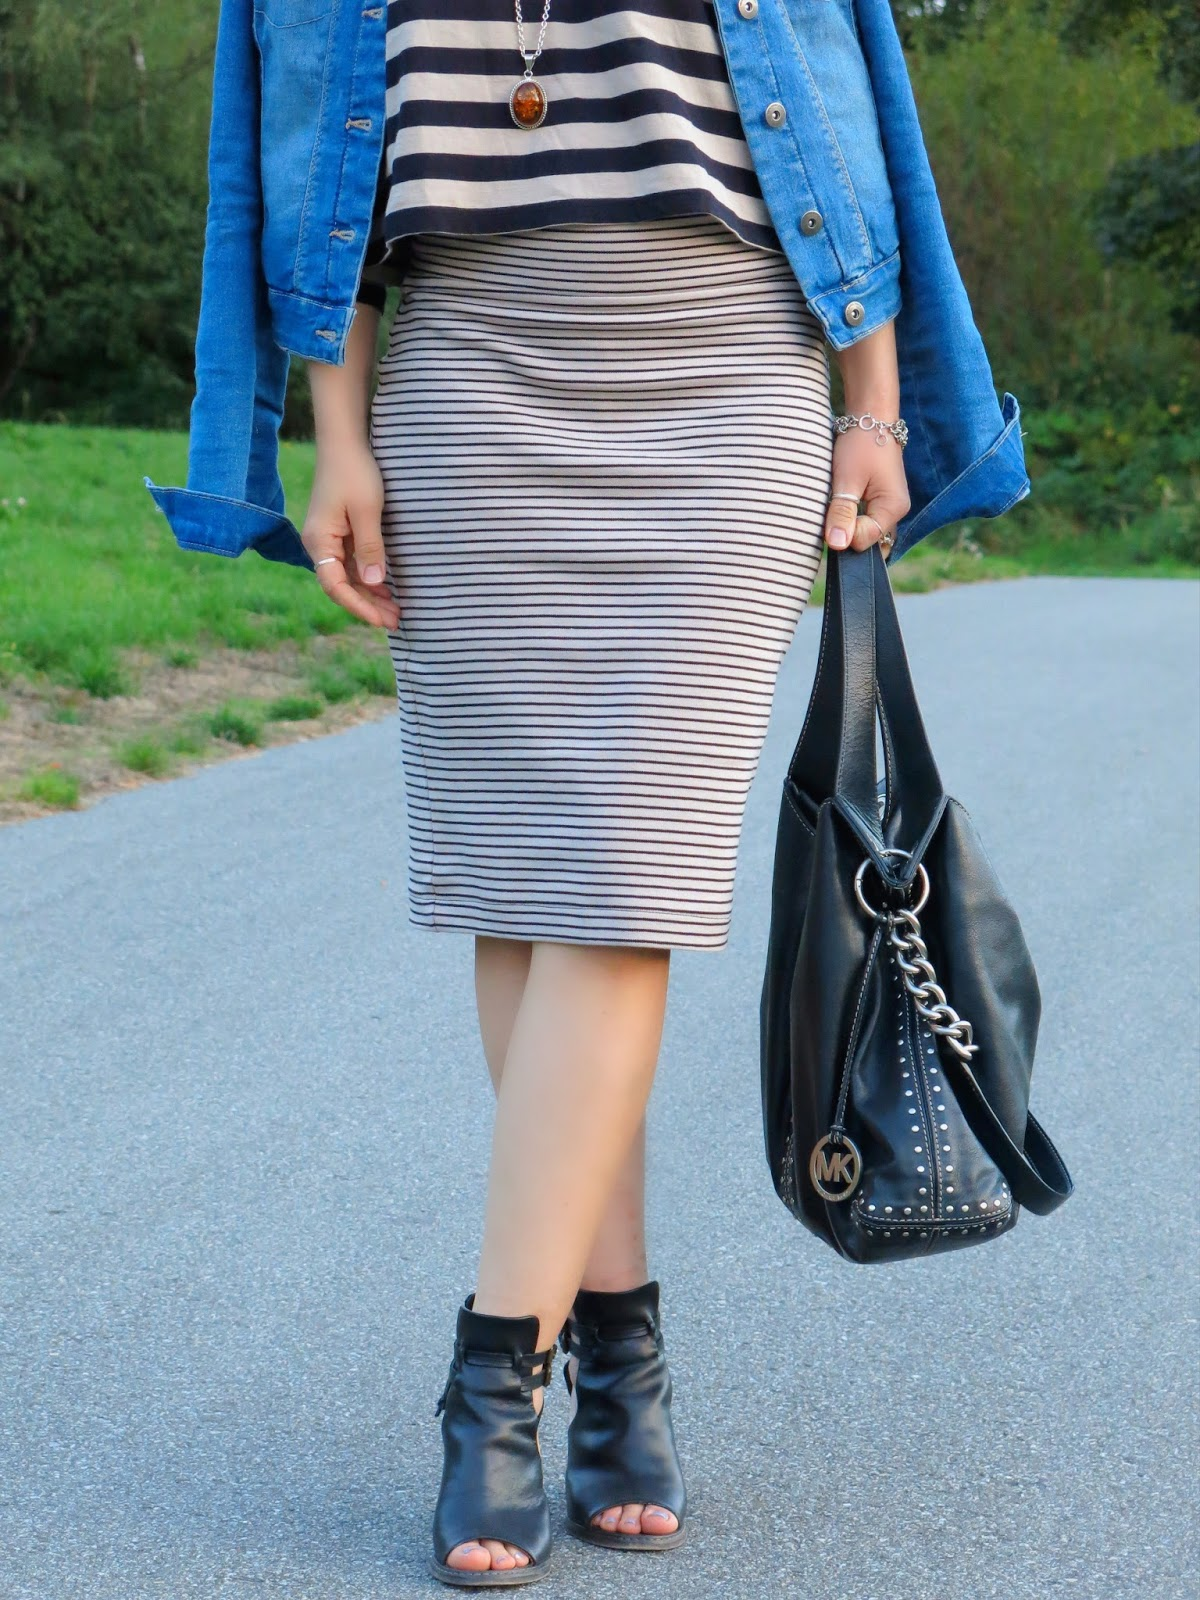 styling a monochromatic striped pencil skirt and crop top with a denim jacket